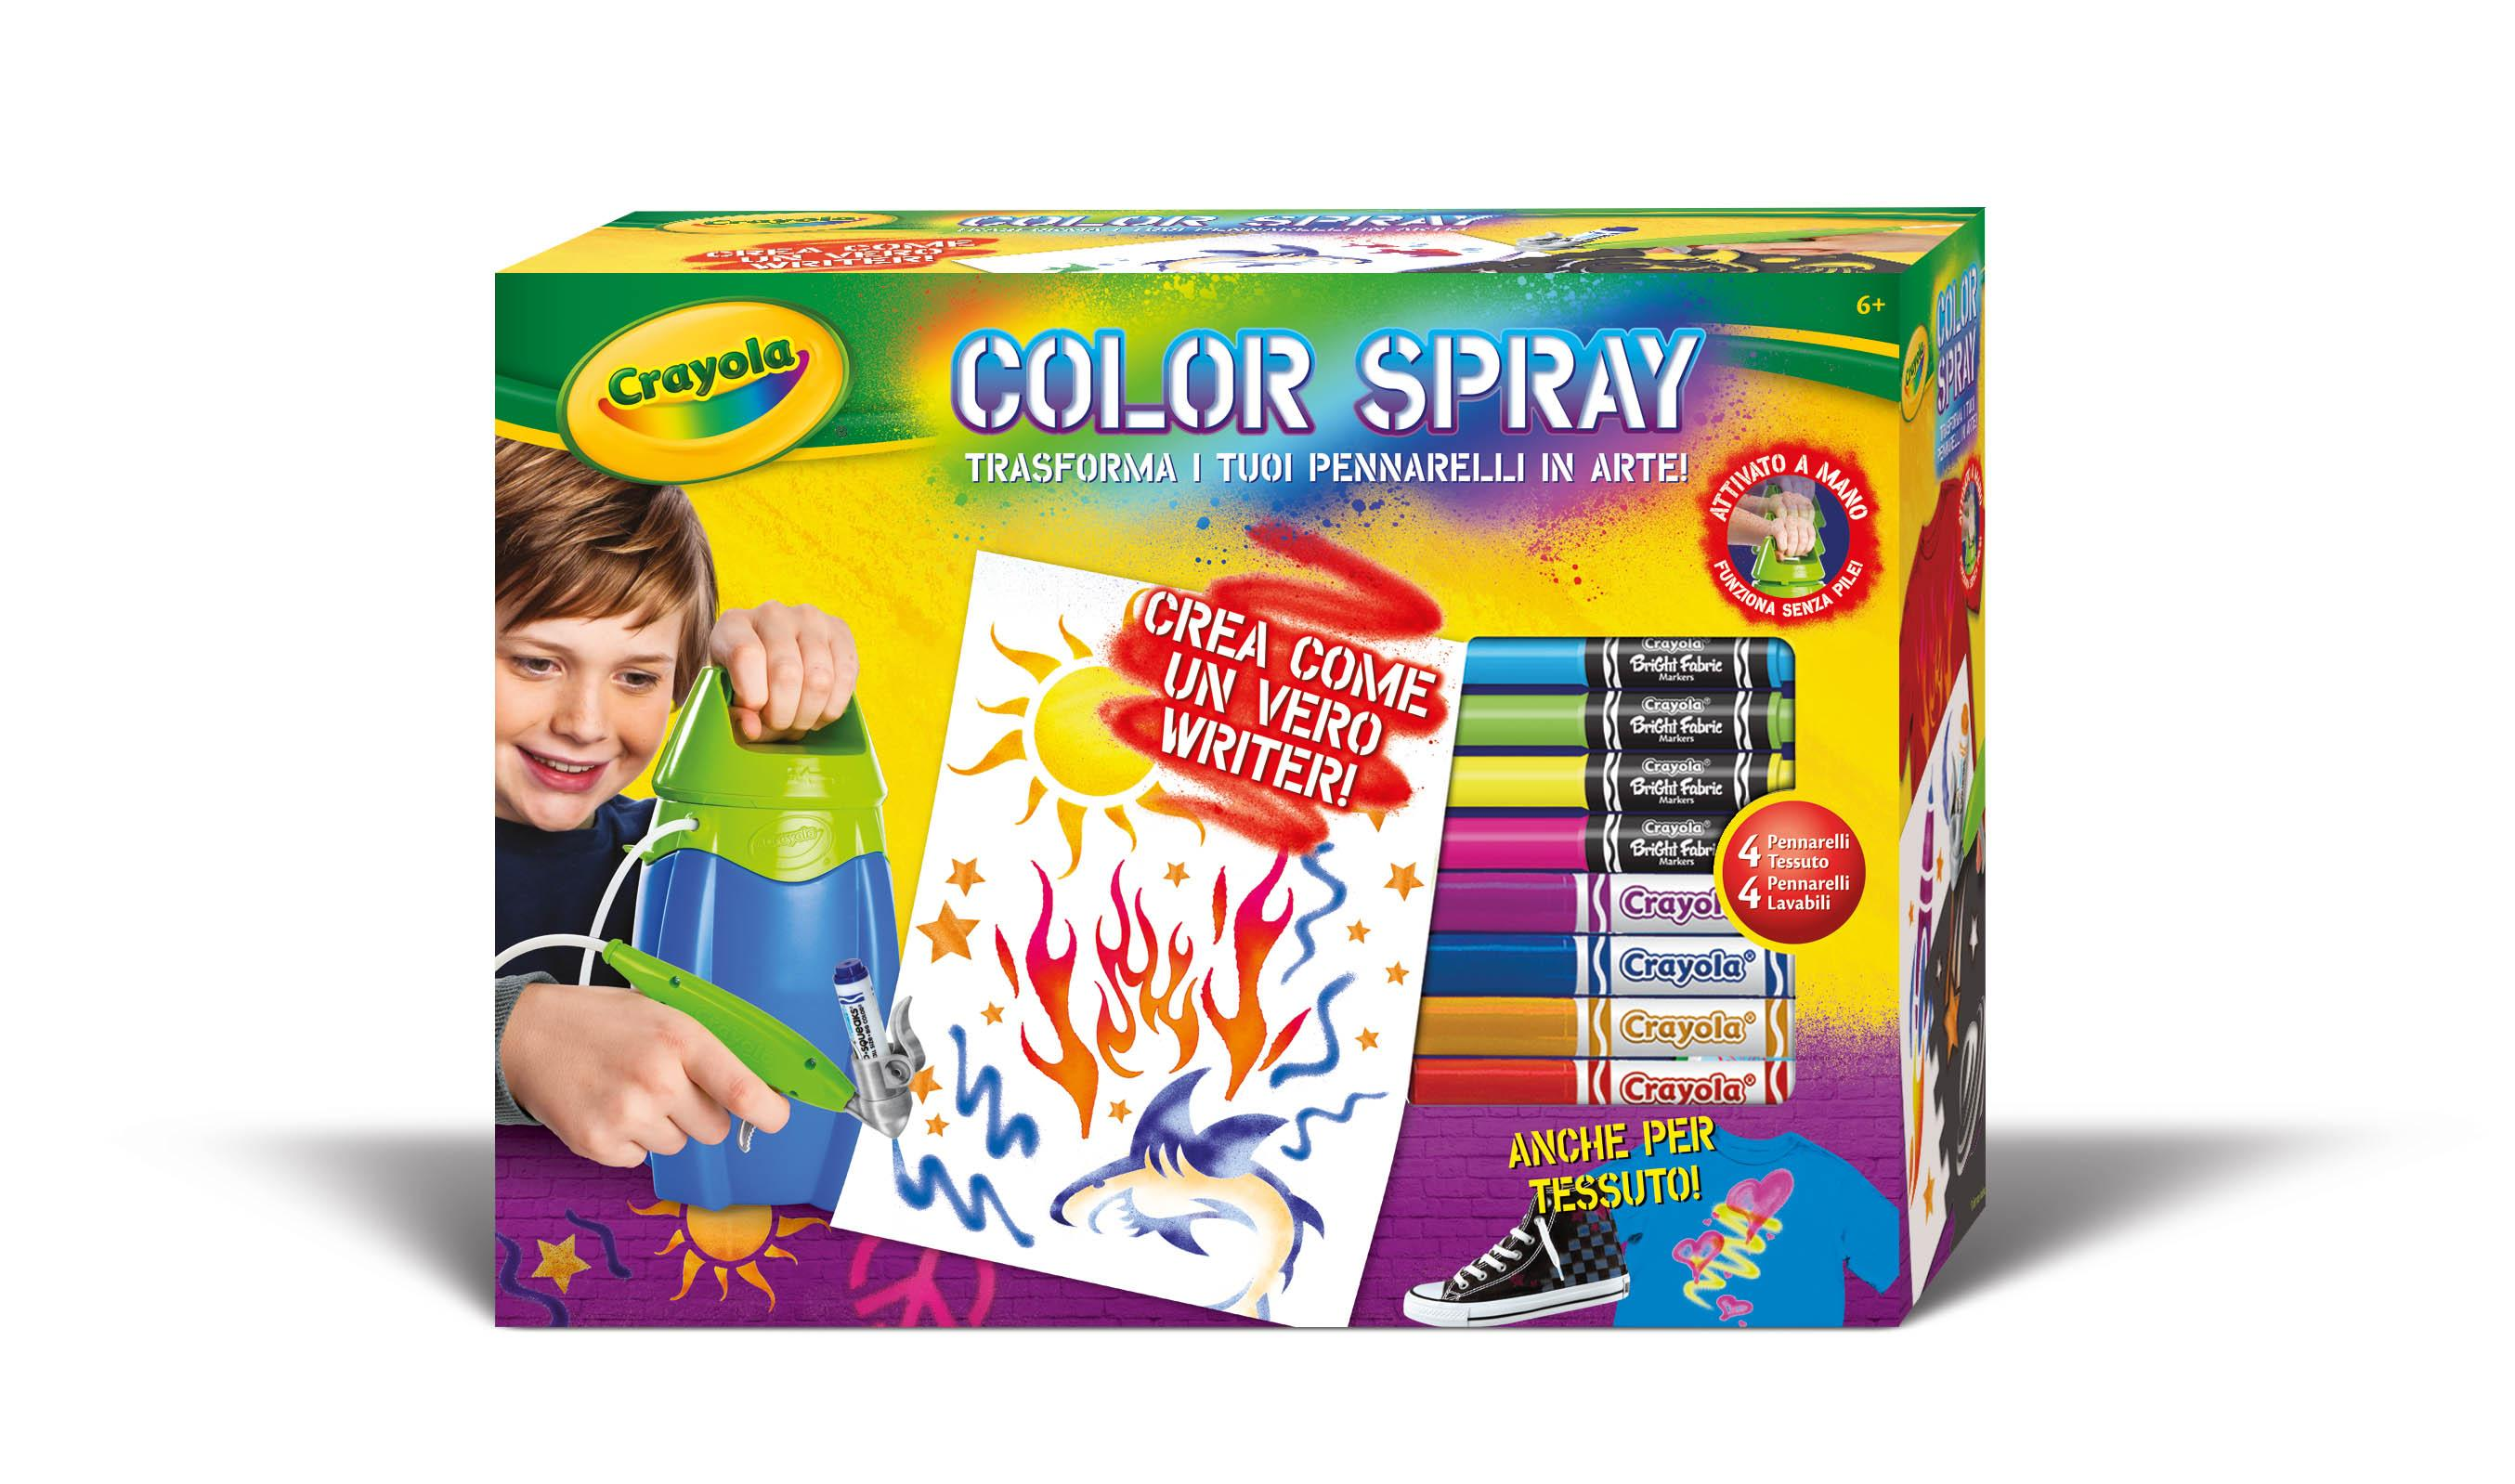 crayola 04 8733 color spray aerografo giochi